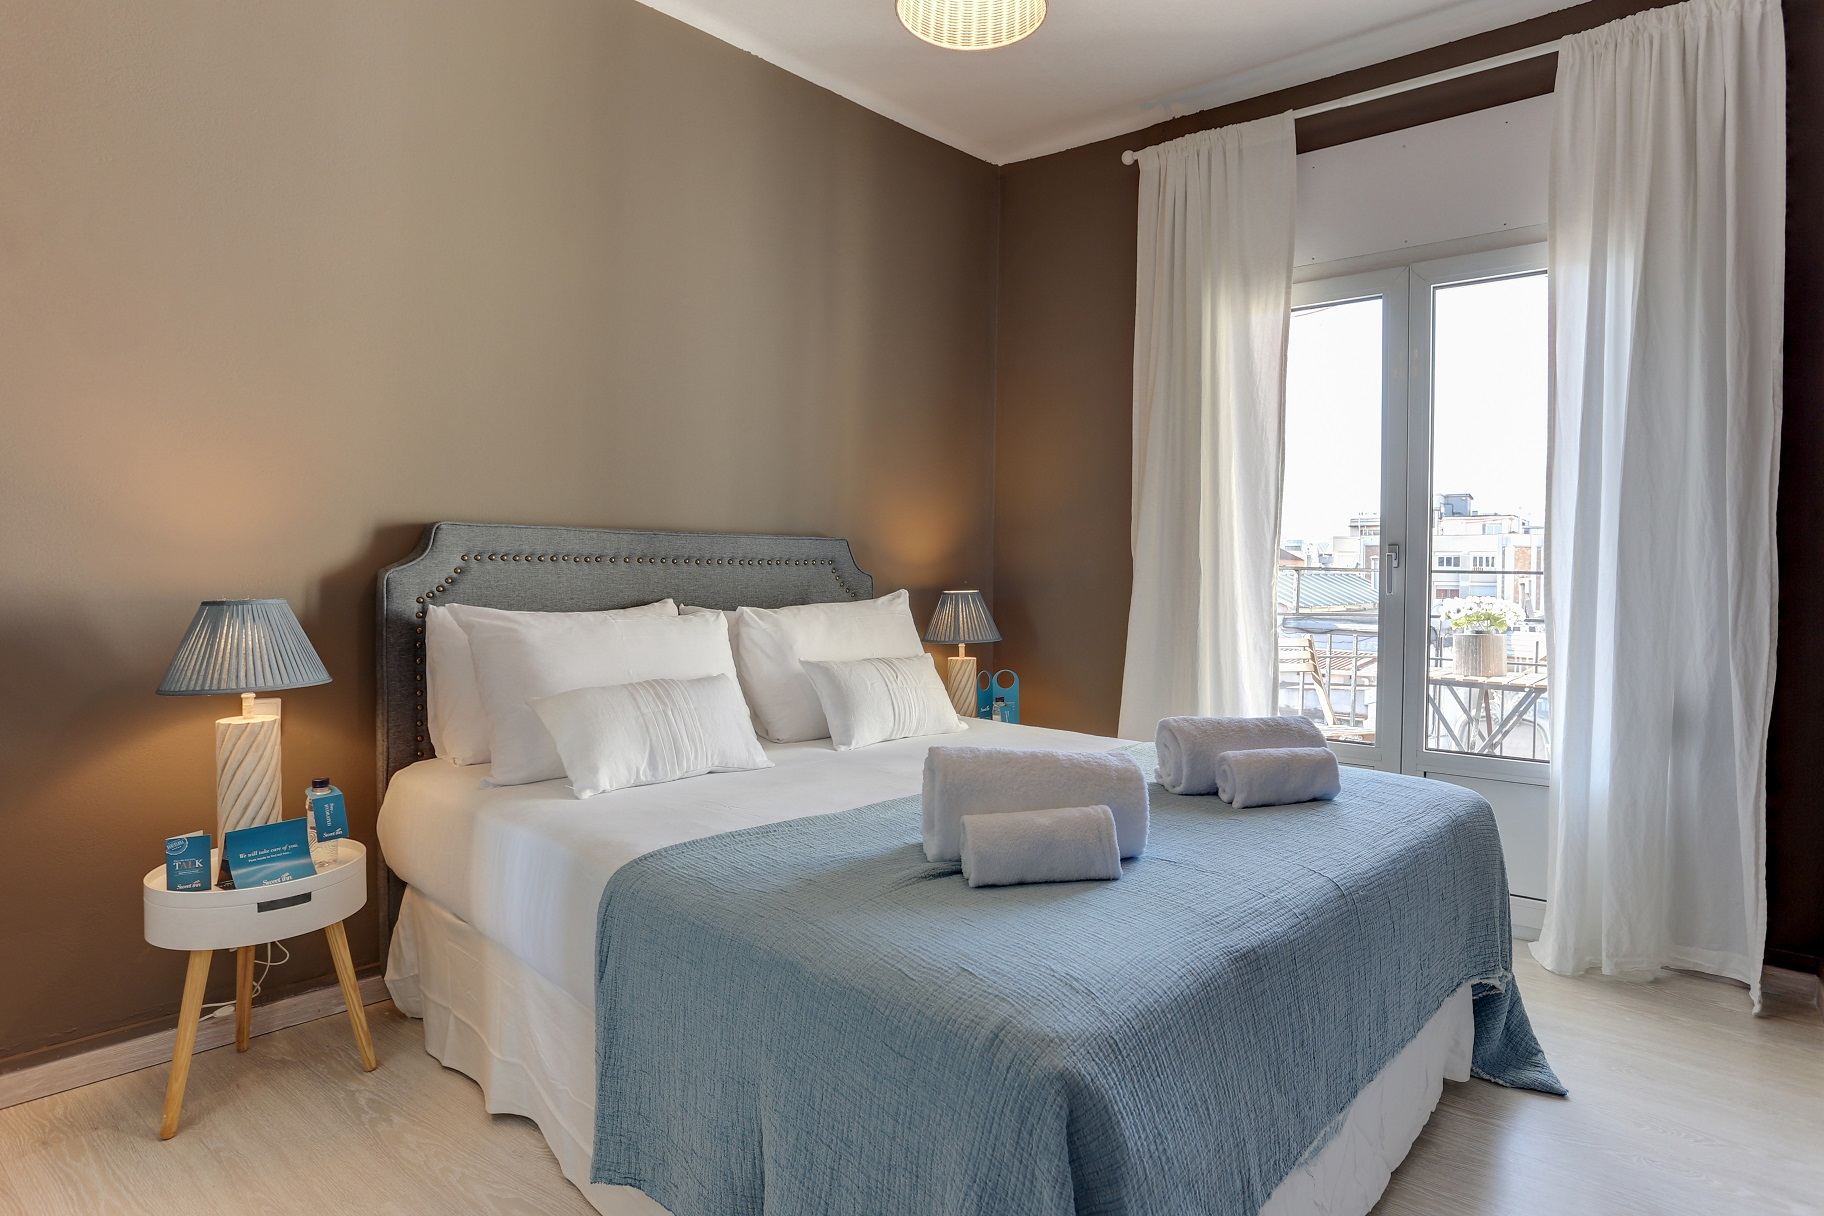 Grand bedroom at Rocafort Apartments